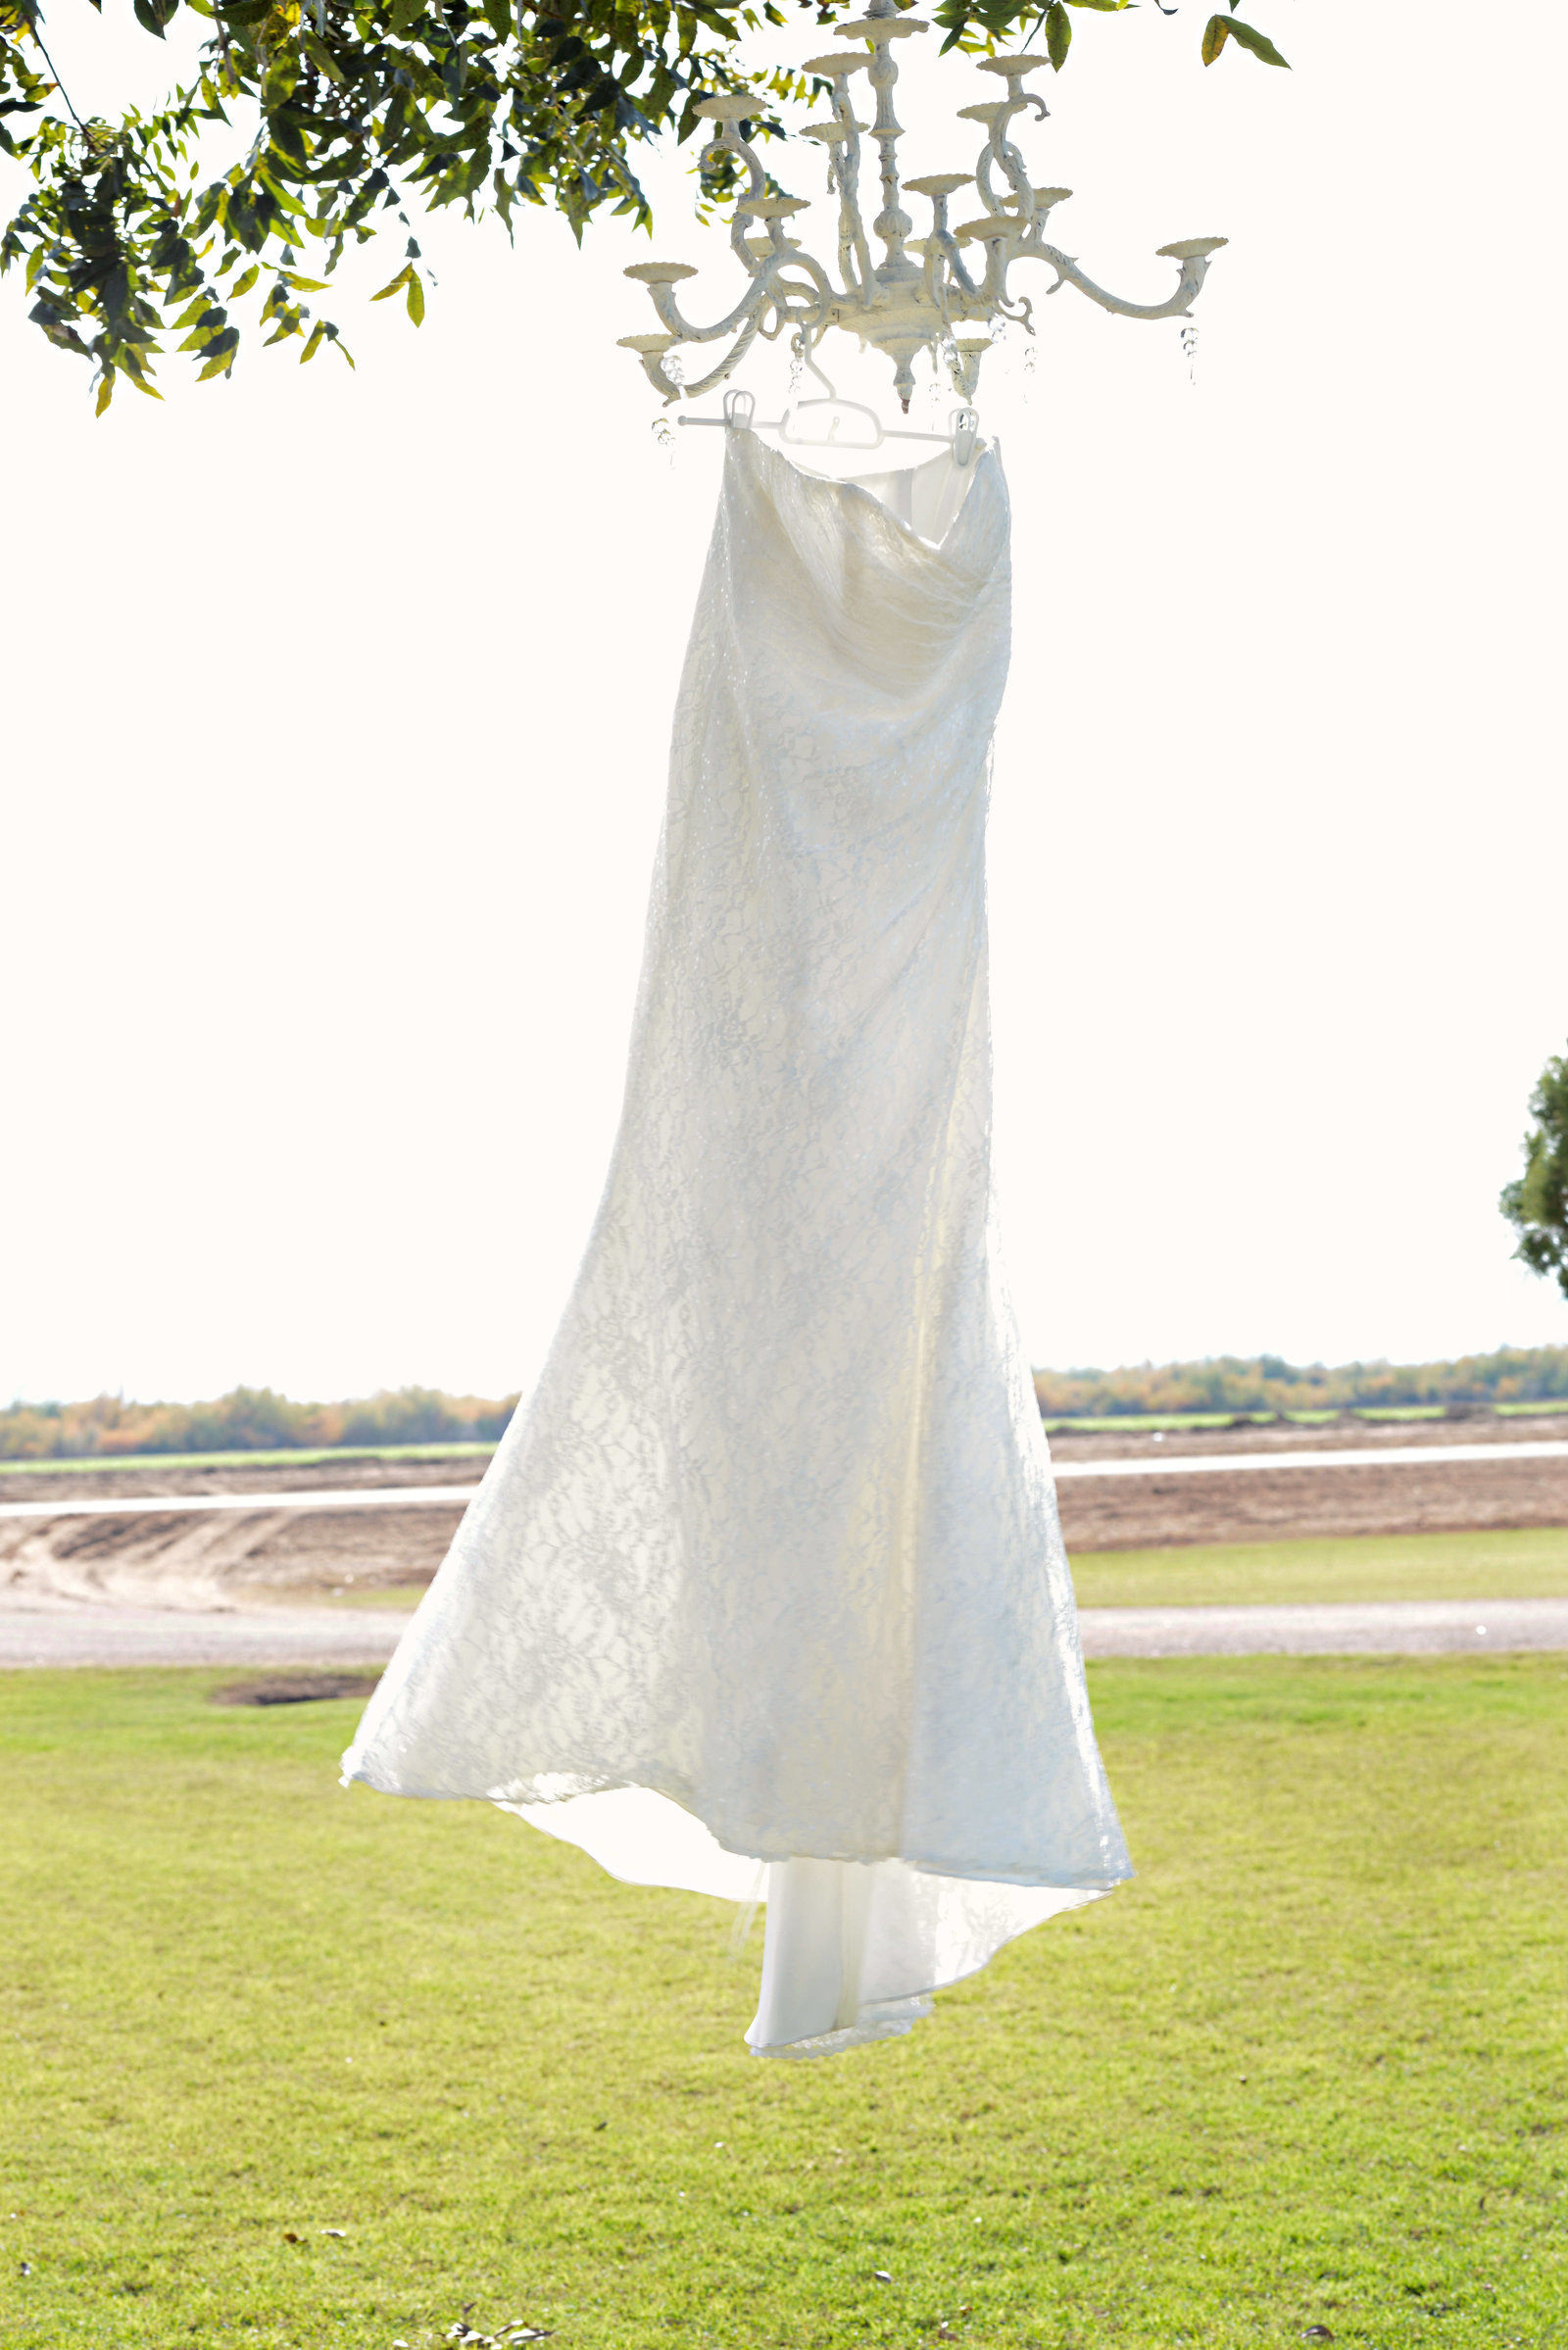 wedding dress hanging from a tree in Roll Arizona